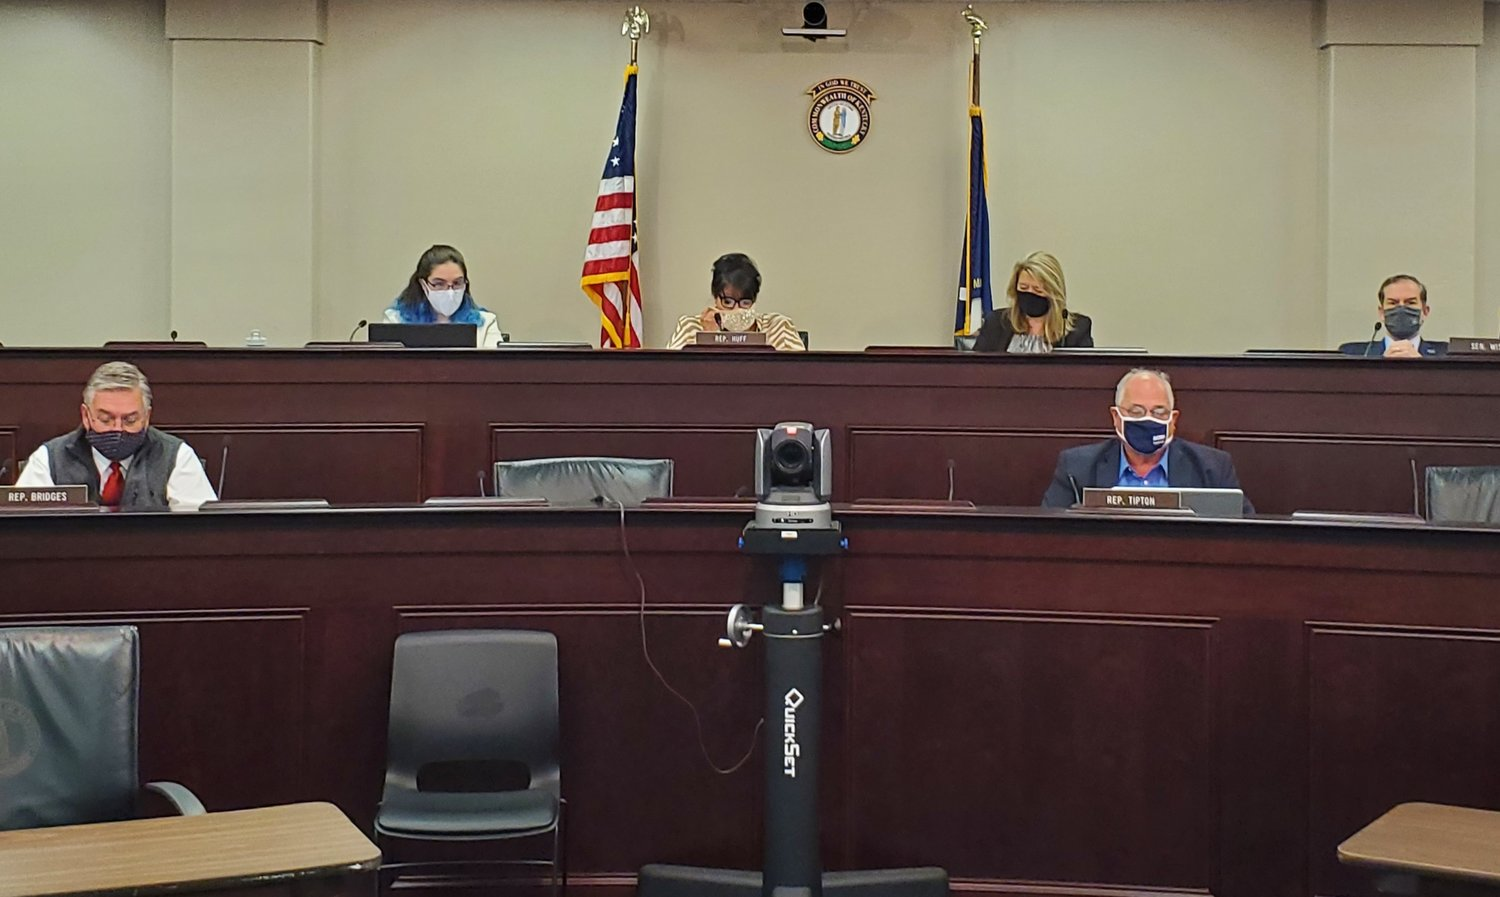 Lawmakers on the education committee heard via Zoom from three Kentucky school superintendents about how they have dealt with the coronavirus. (Kentucky Today/Tom Latek)